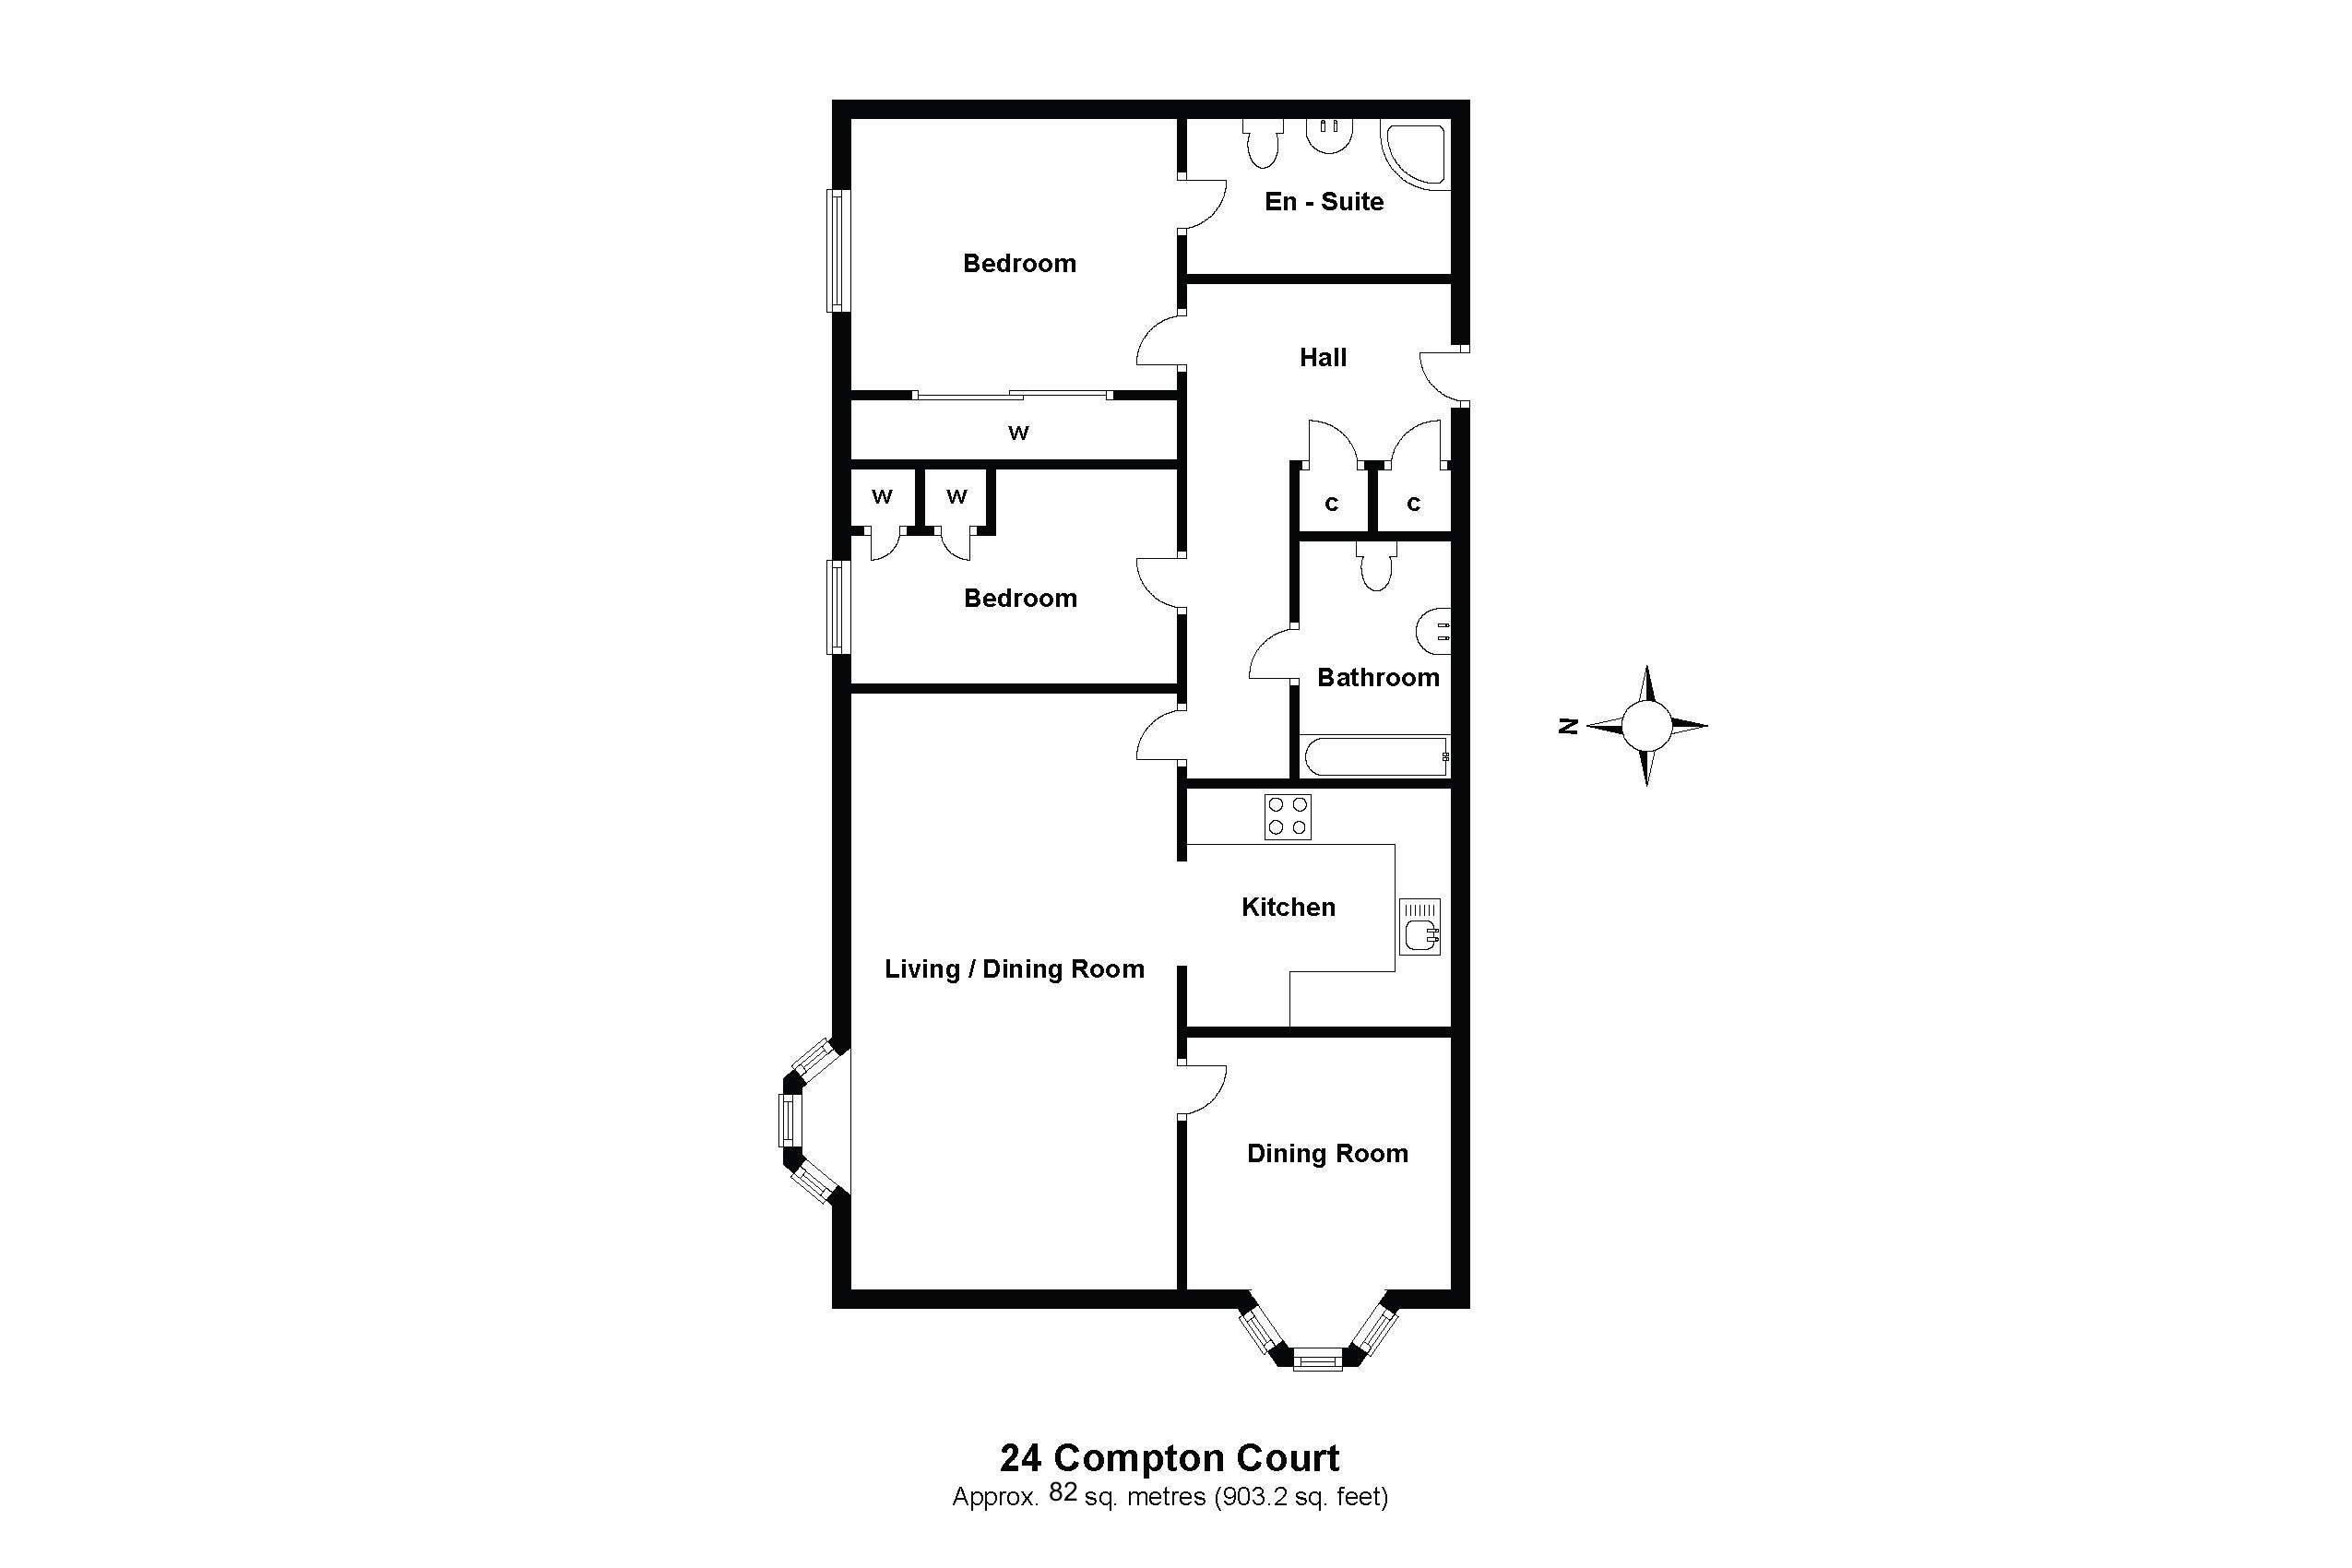 24 Compton Court Floorplan